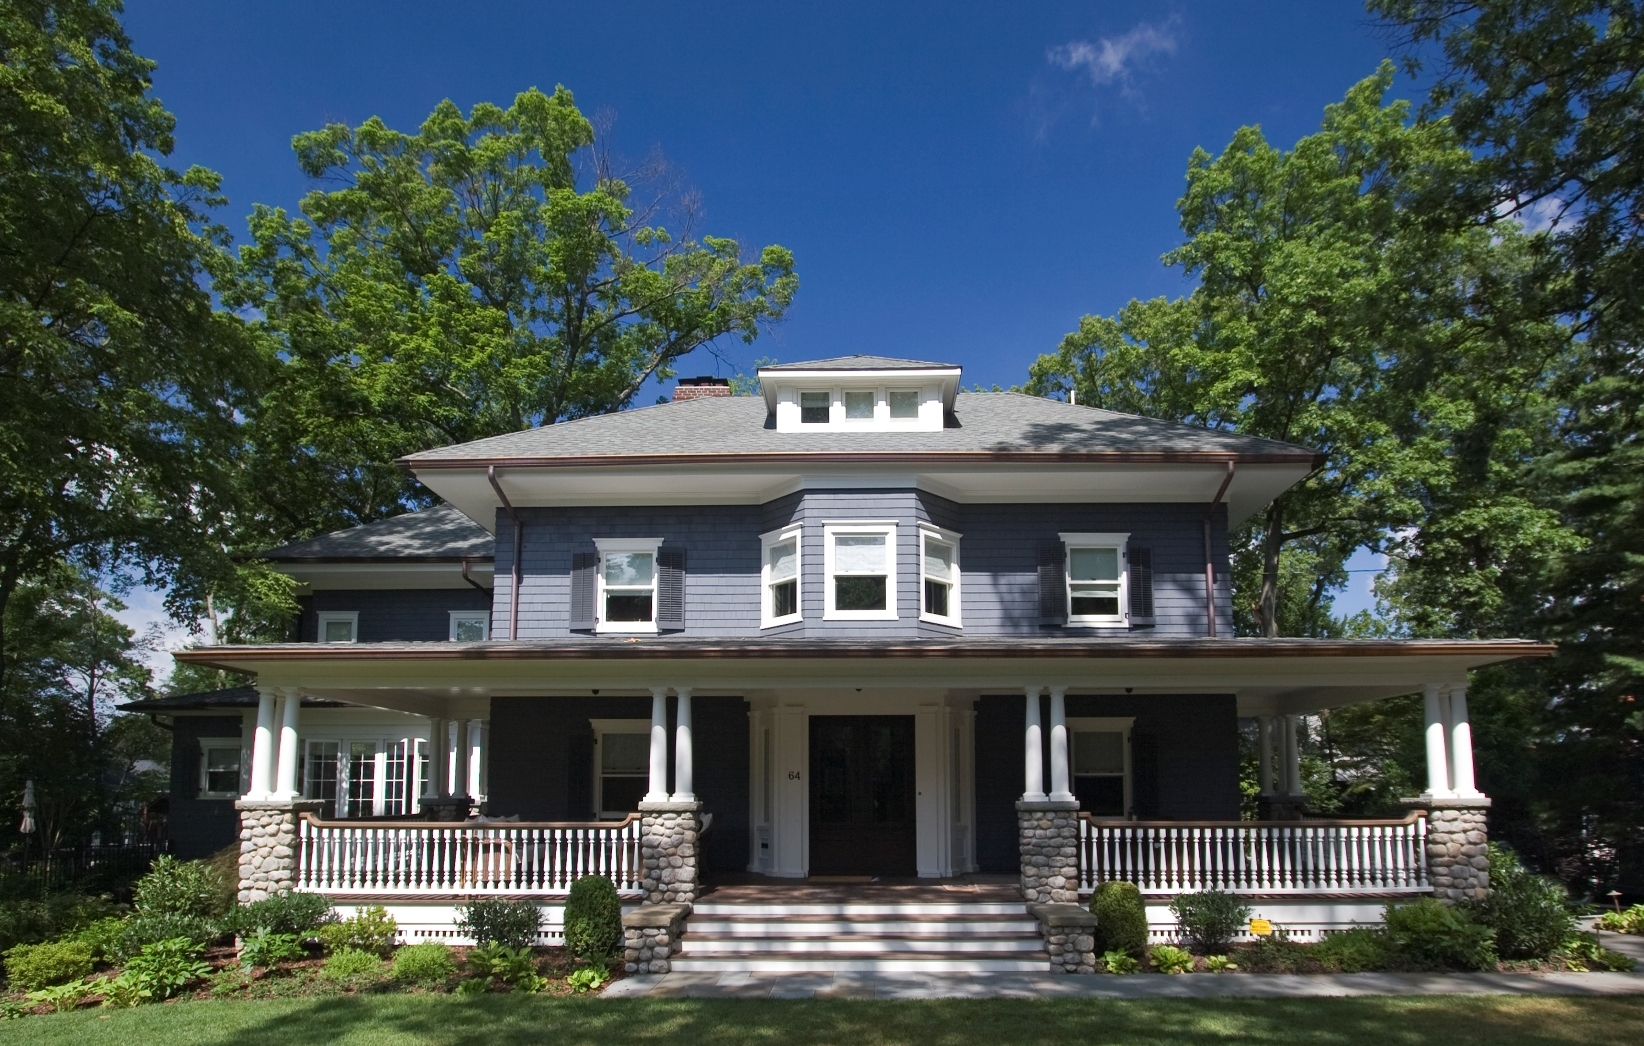 The quintessential wrap around porch in Historical downtown Ridgewood, NJ to see the before images and what a difference details  click here